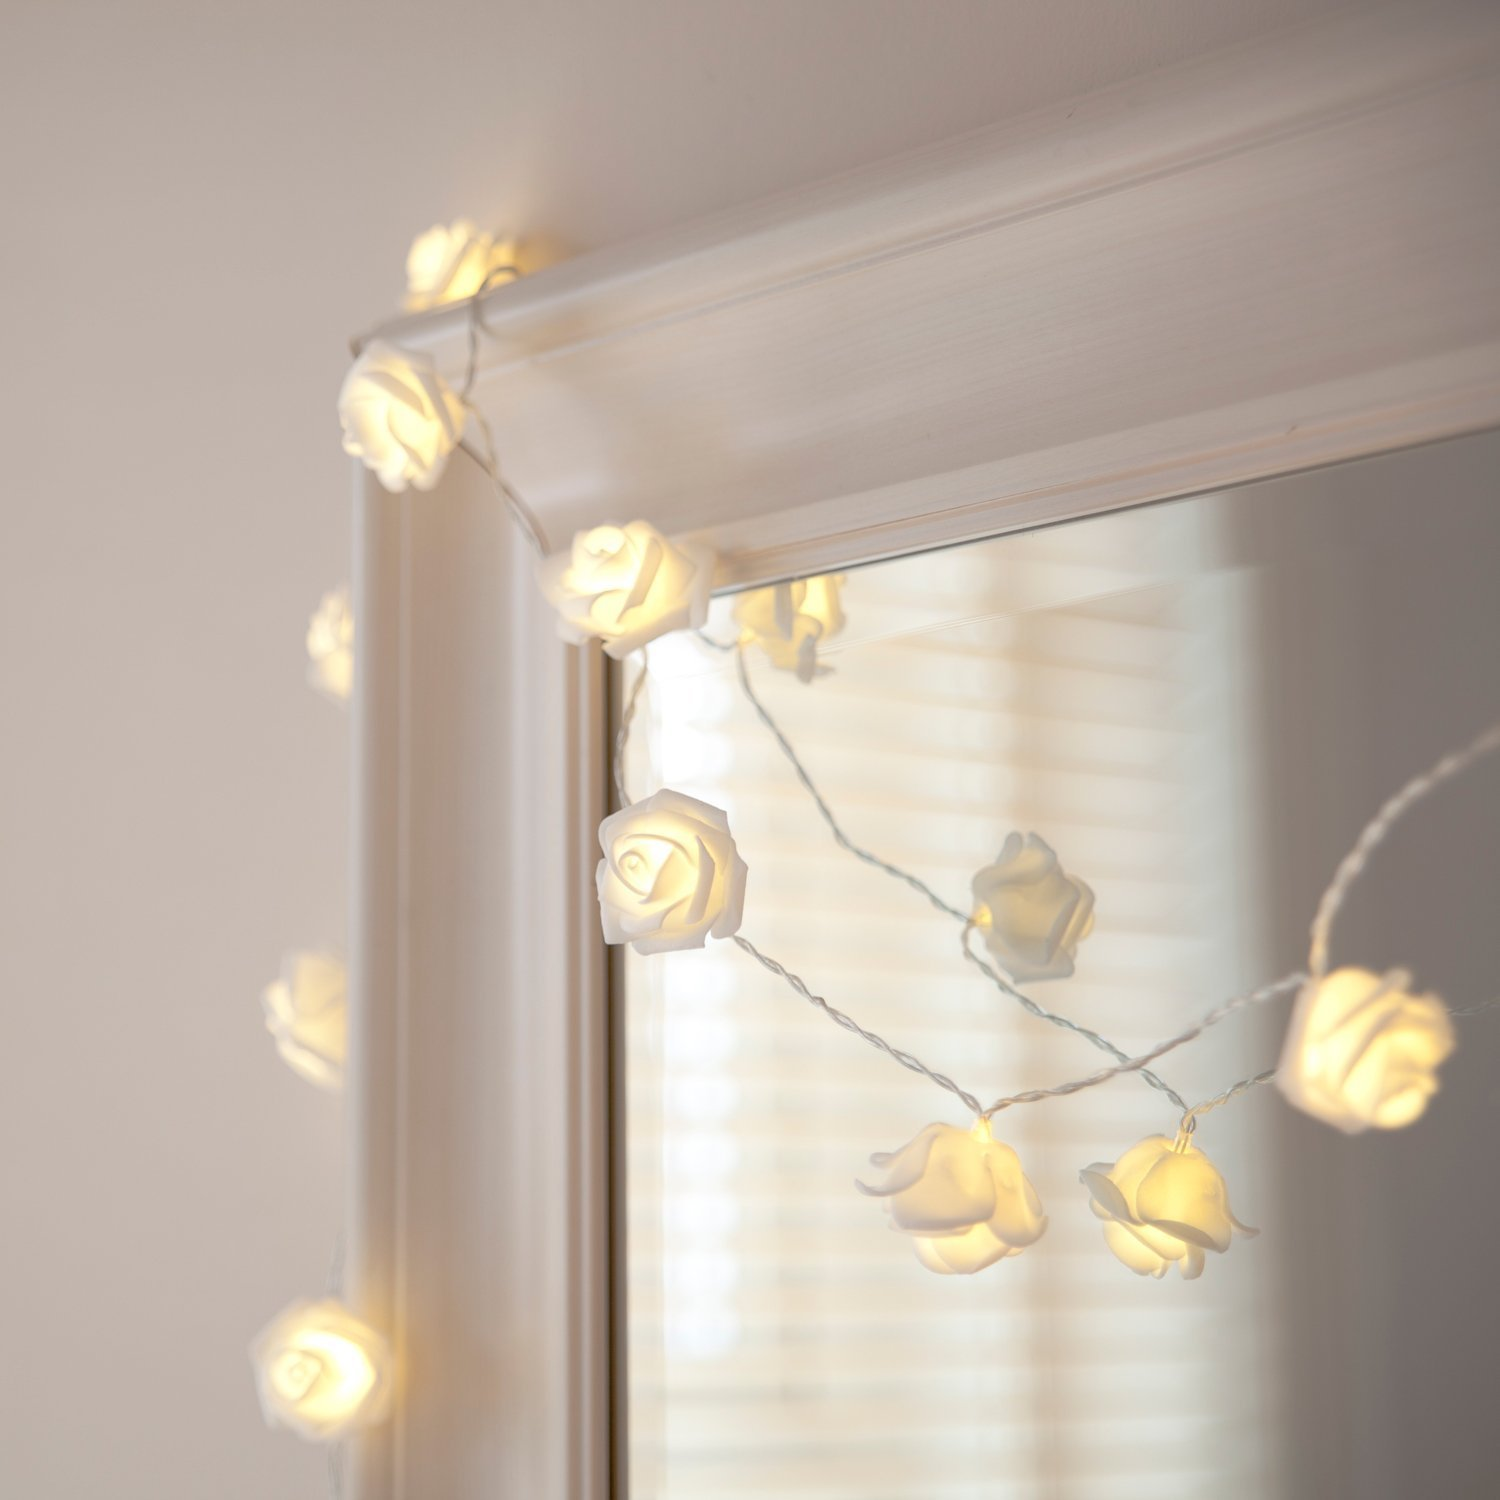 string for fullxfull il listing dorm fairy photo zoom hanging lights display light